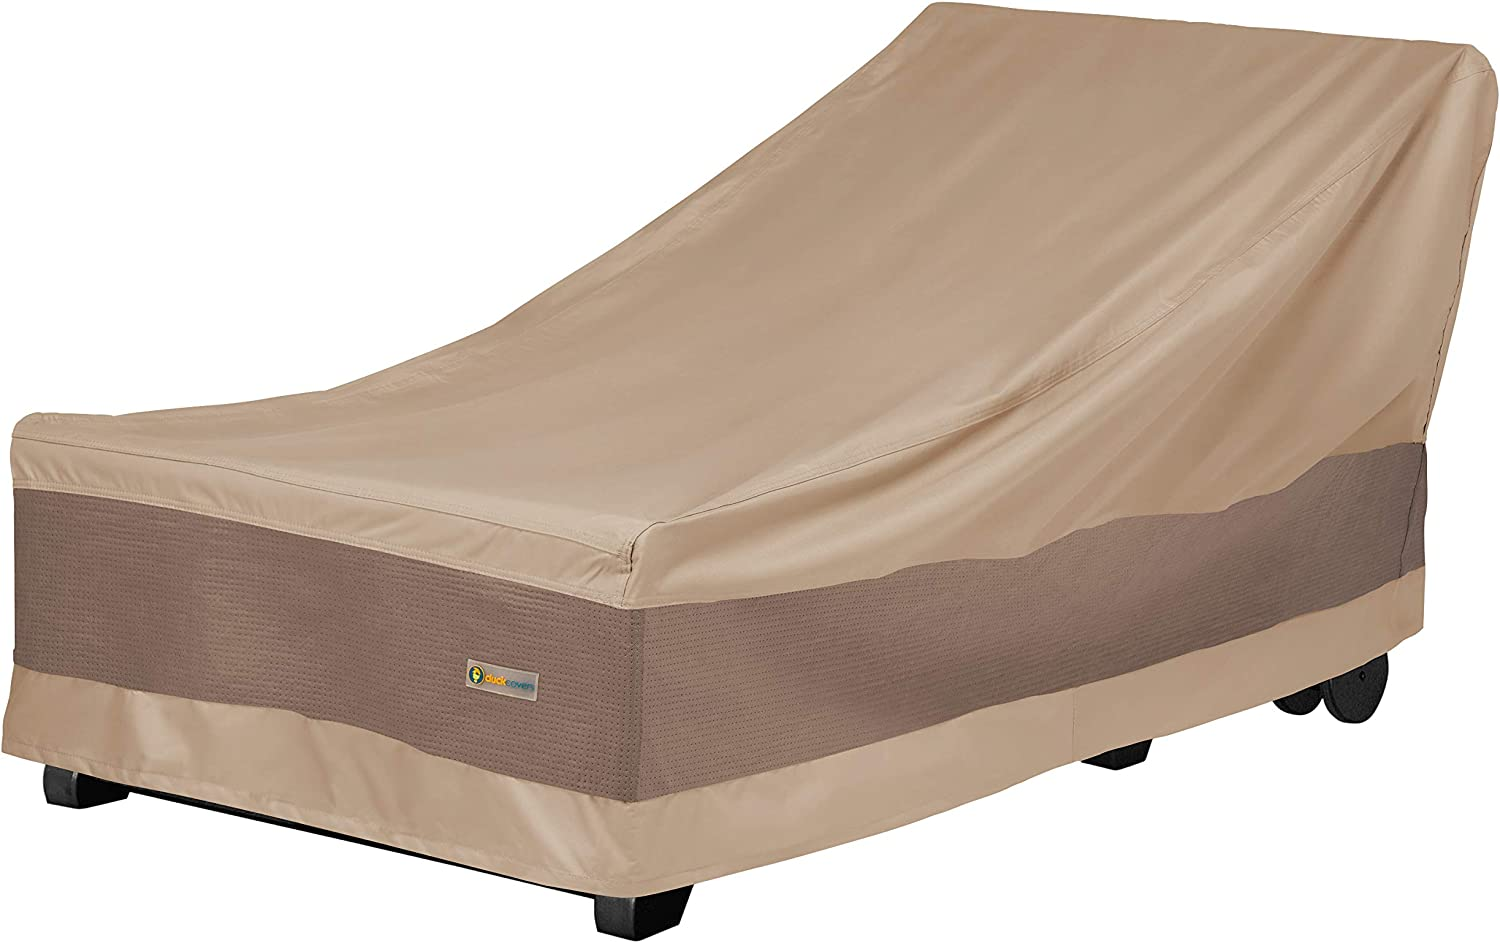 Duck Covers Elegant Patio Chaise Lounge Cover, 74-Inch